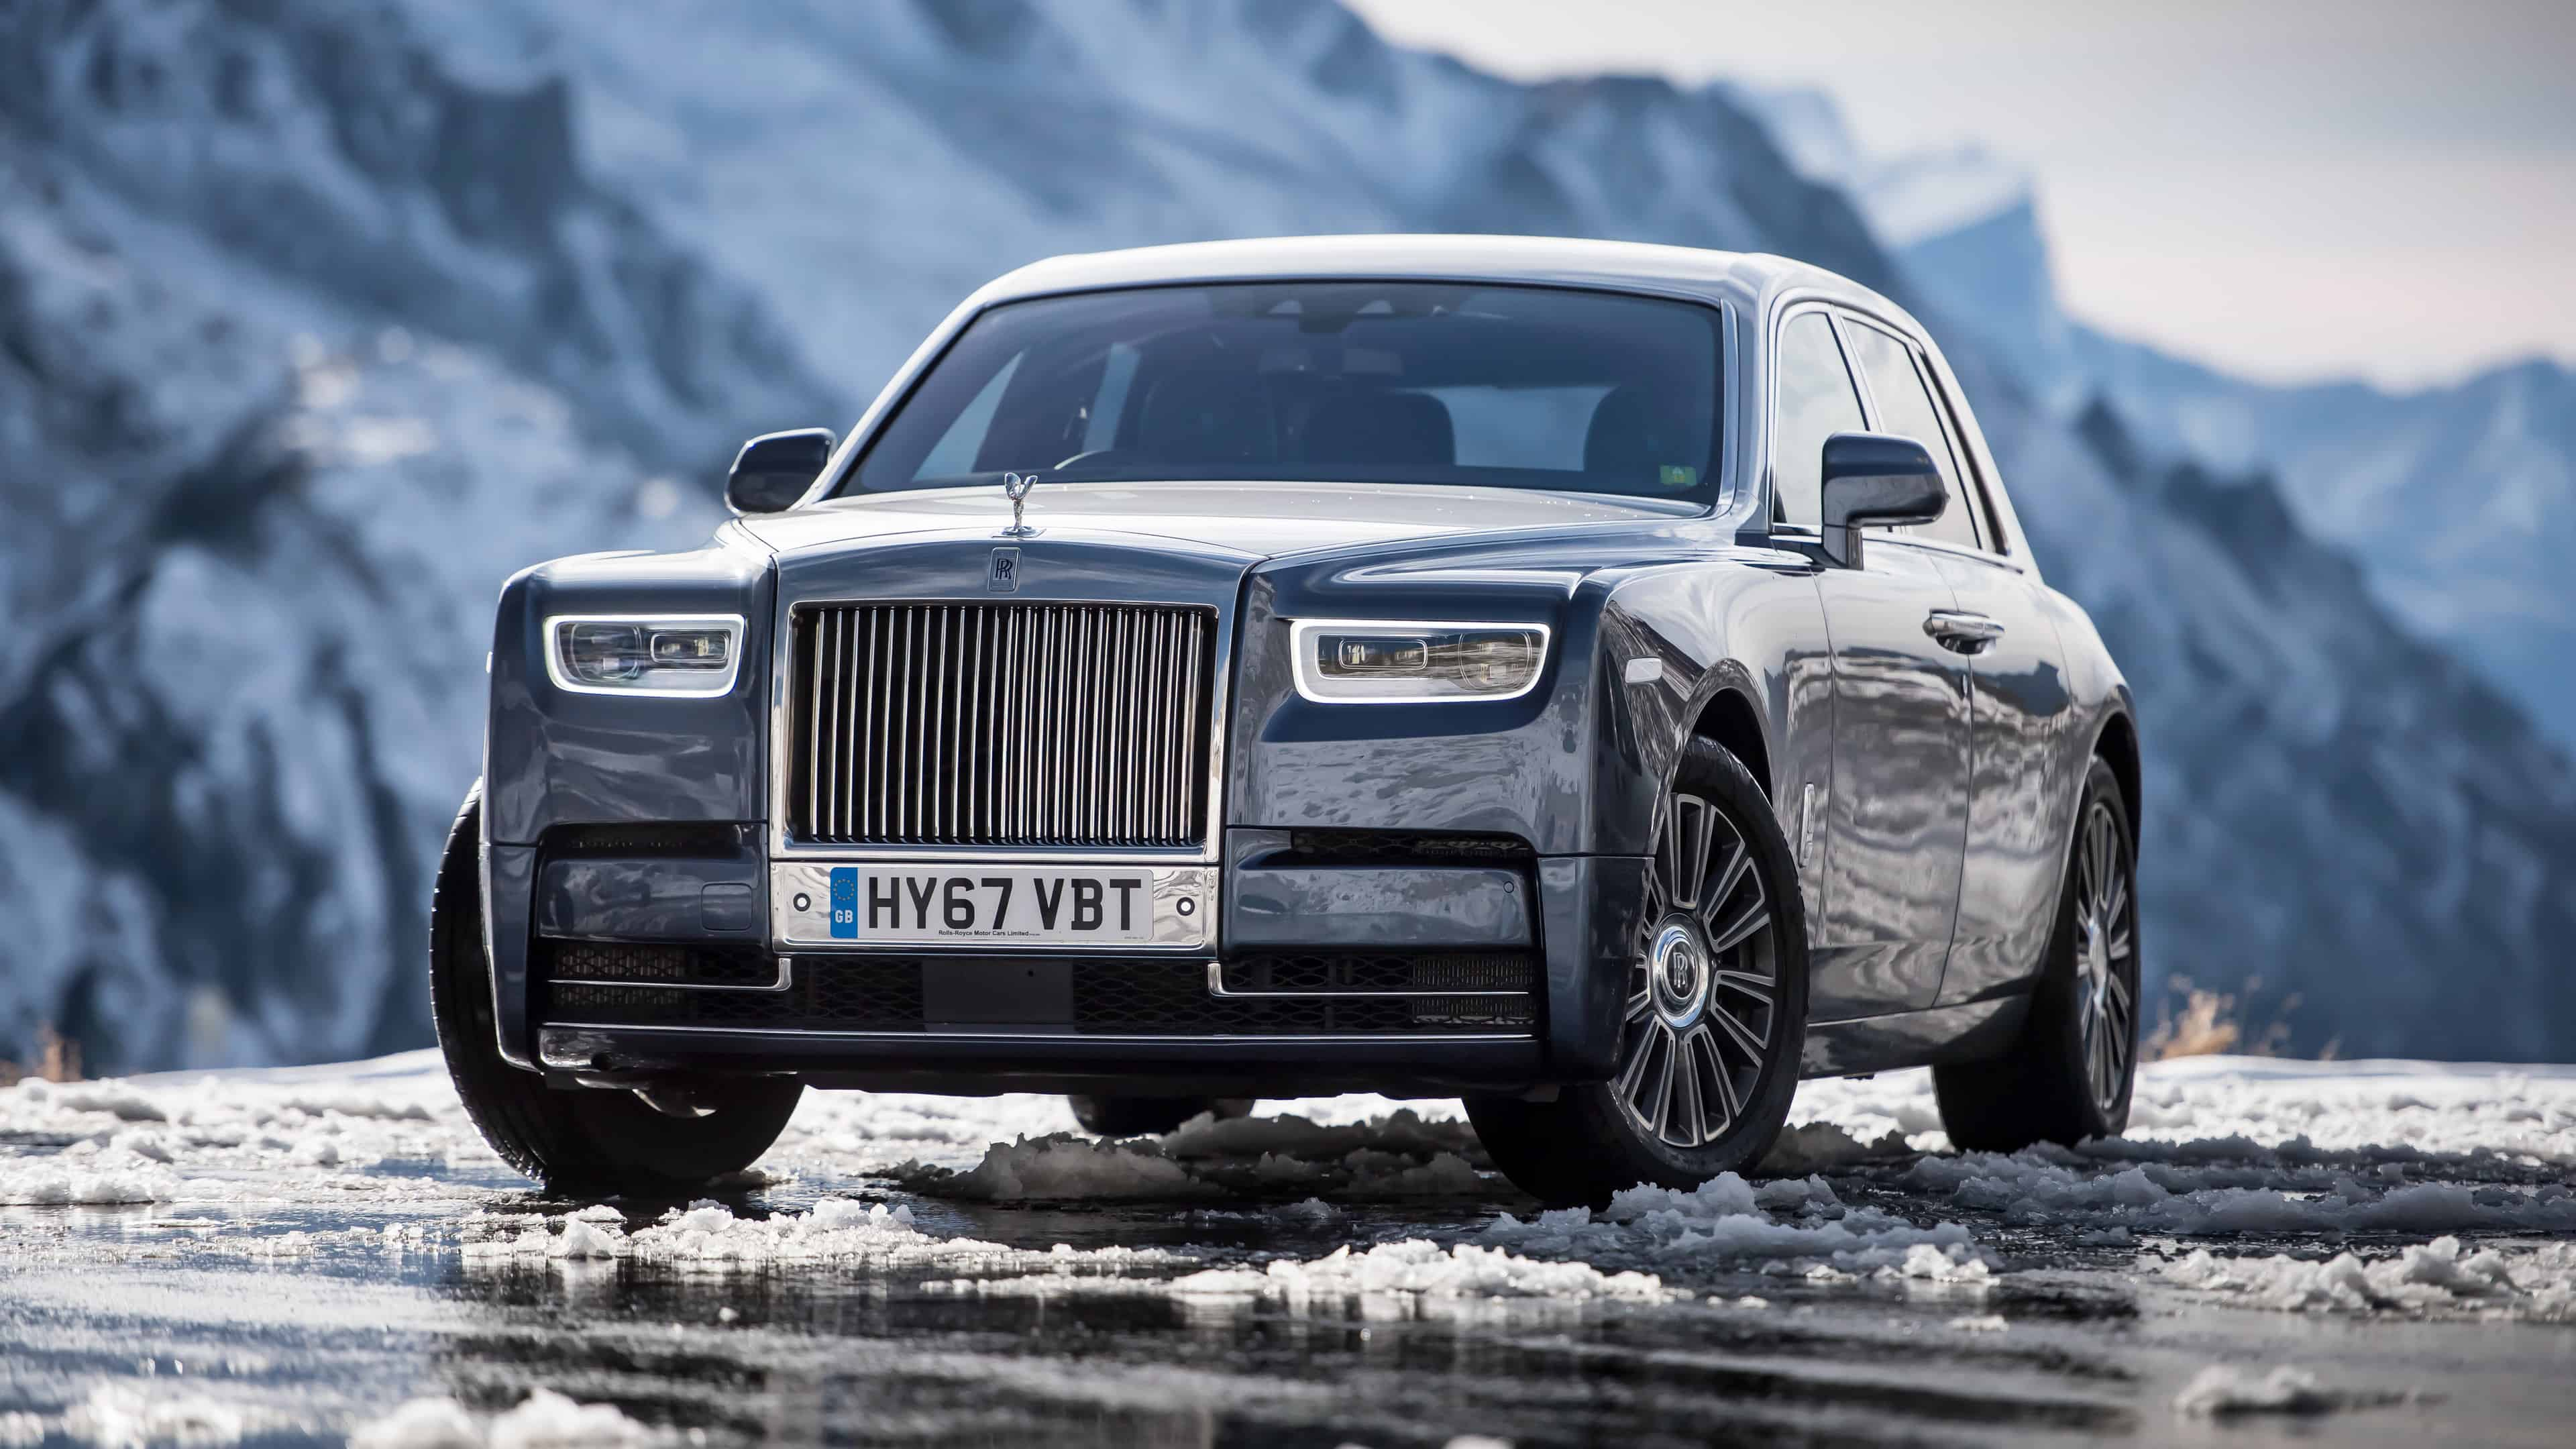 rolls royce phantom uhd 4k wallpaper